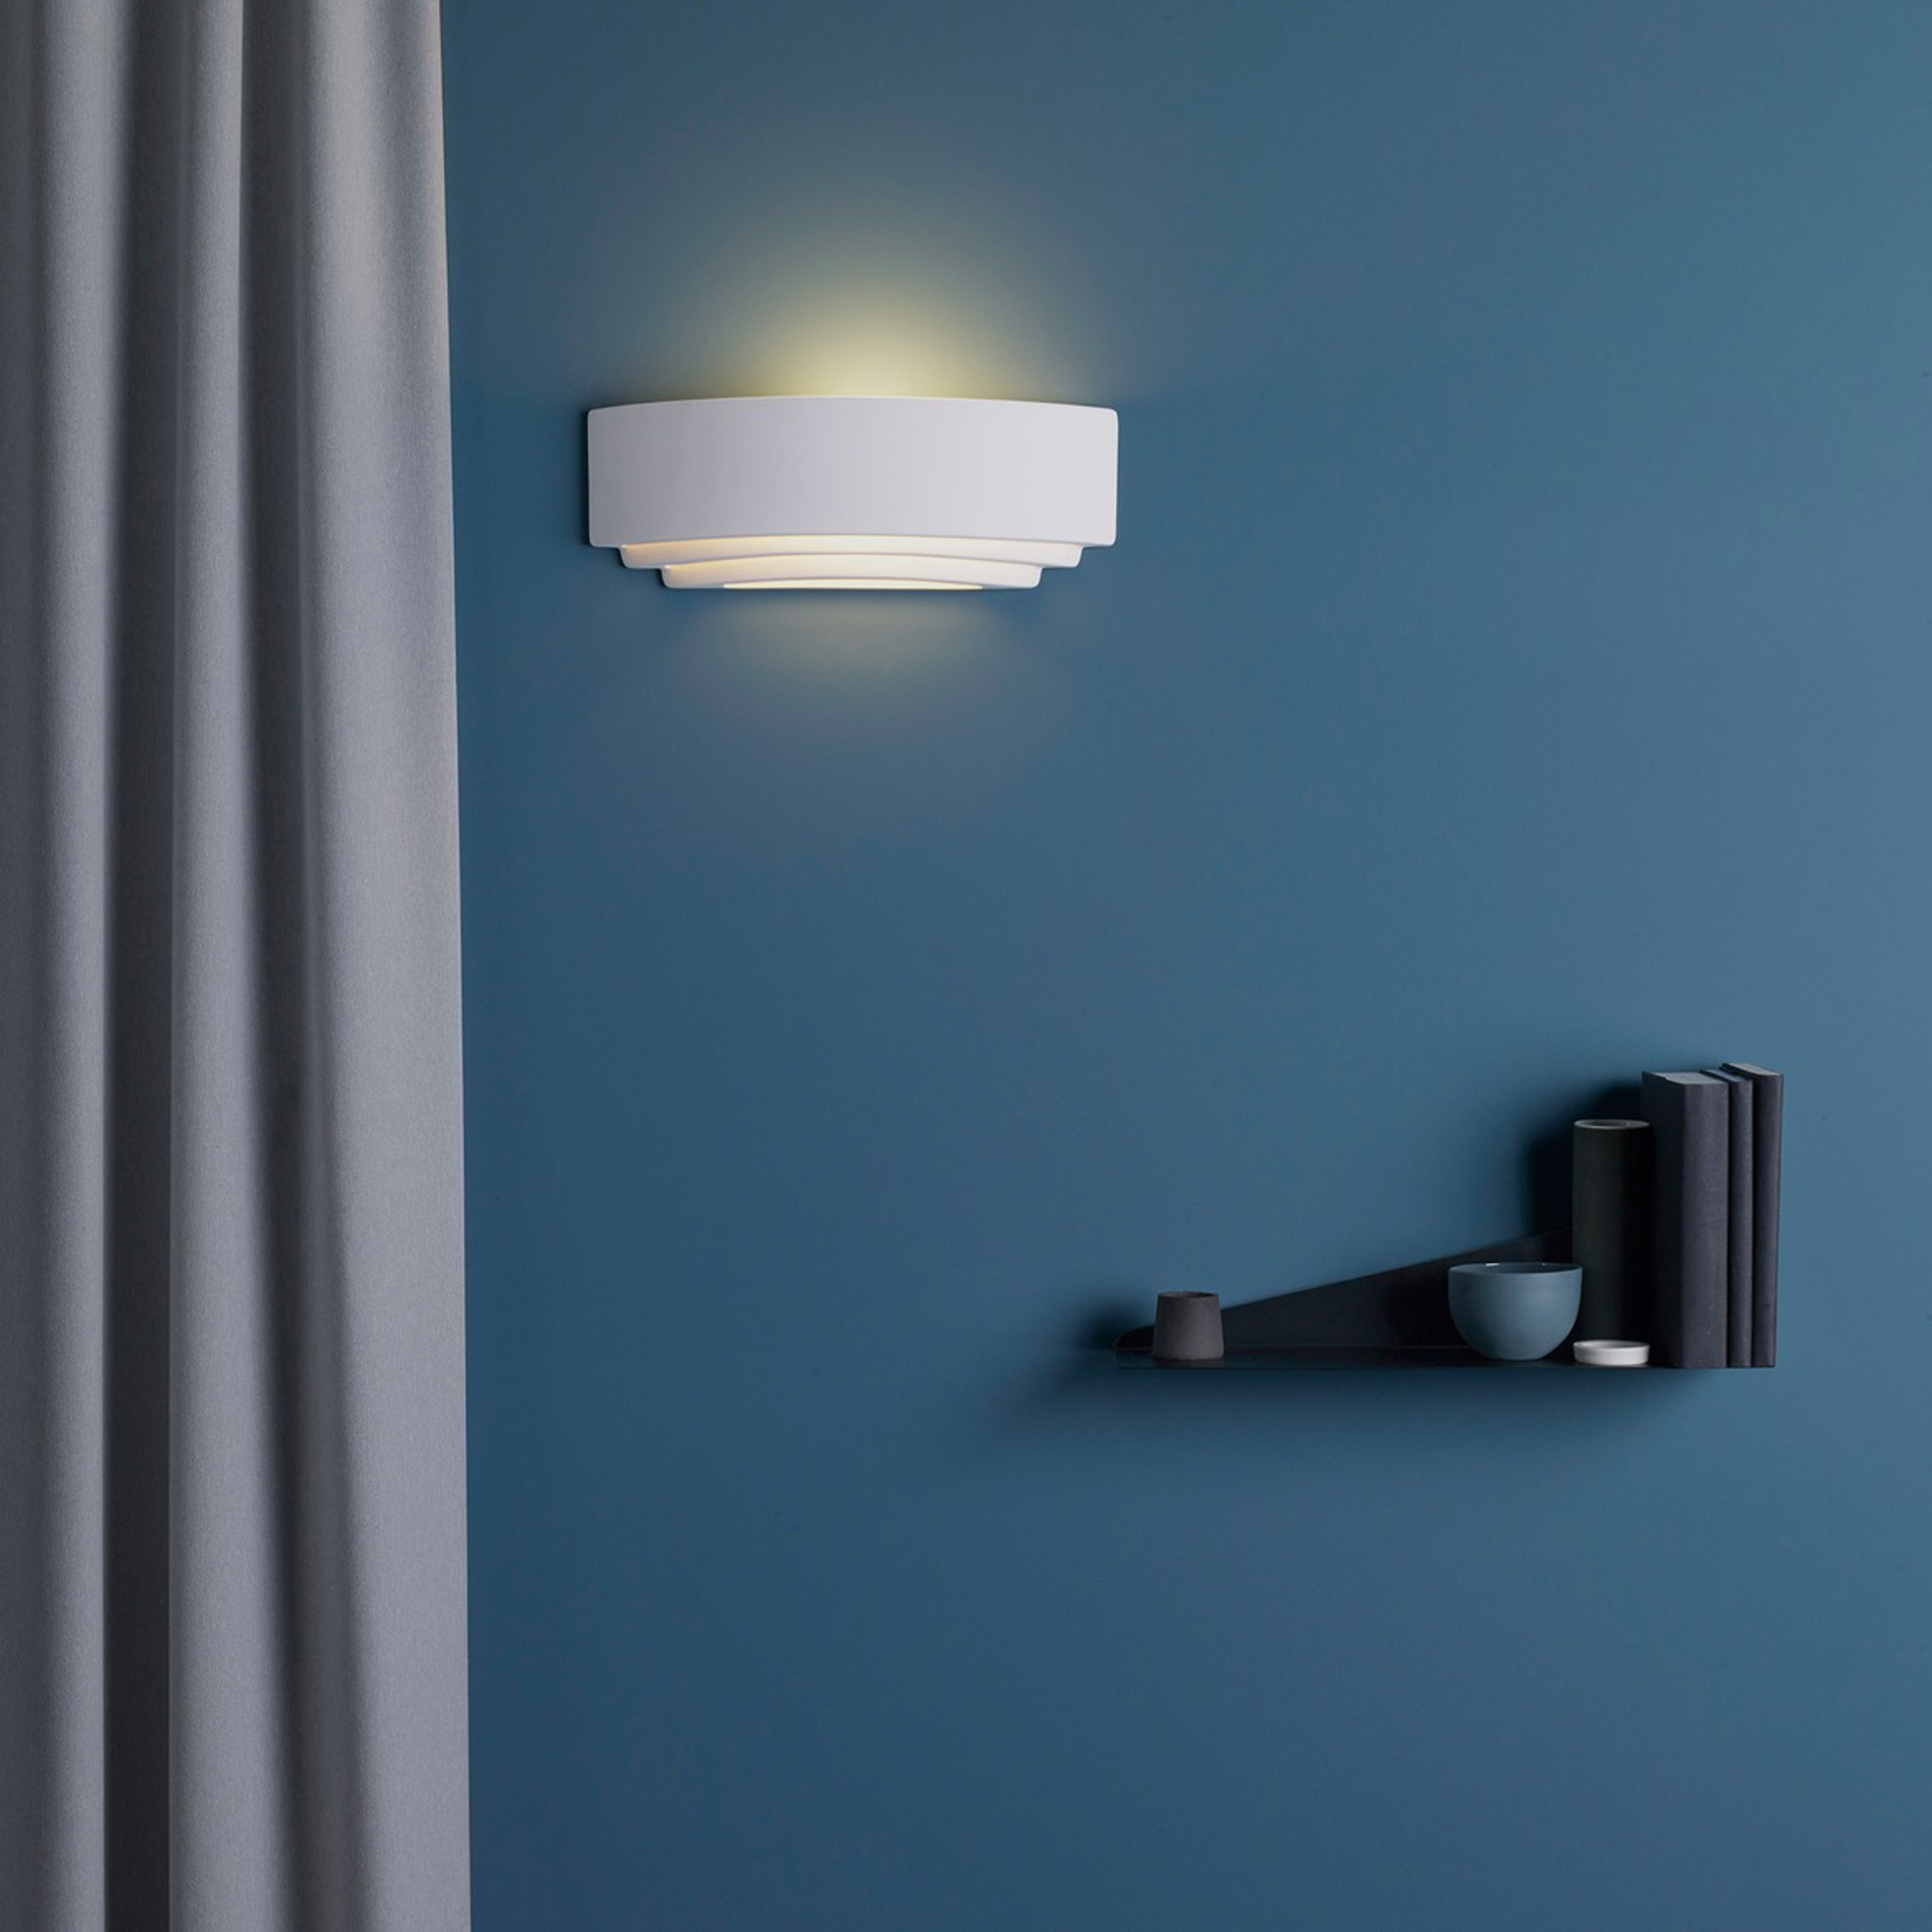 bb5a74474856 Amalfi 380 Wall Light - Buy online now at All Square Lighting